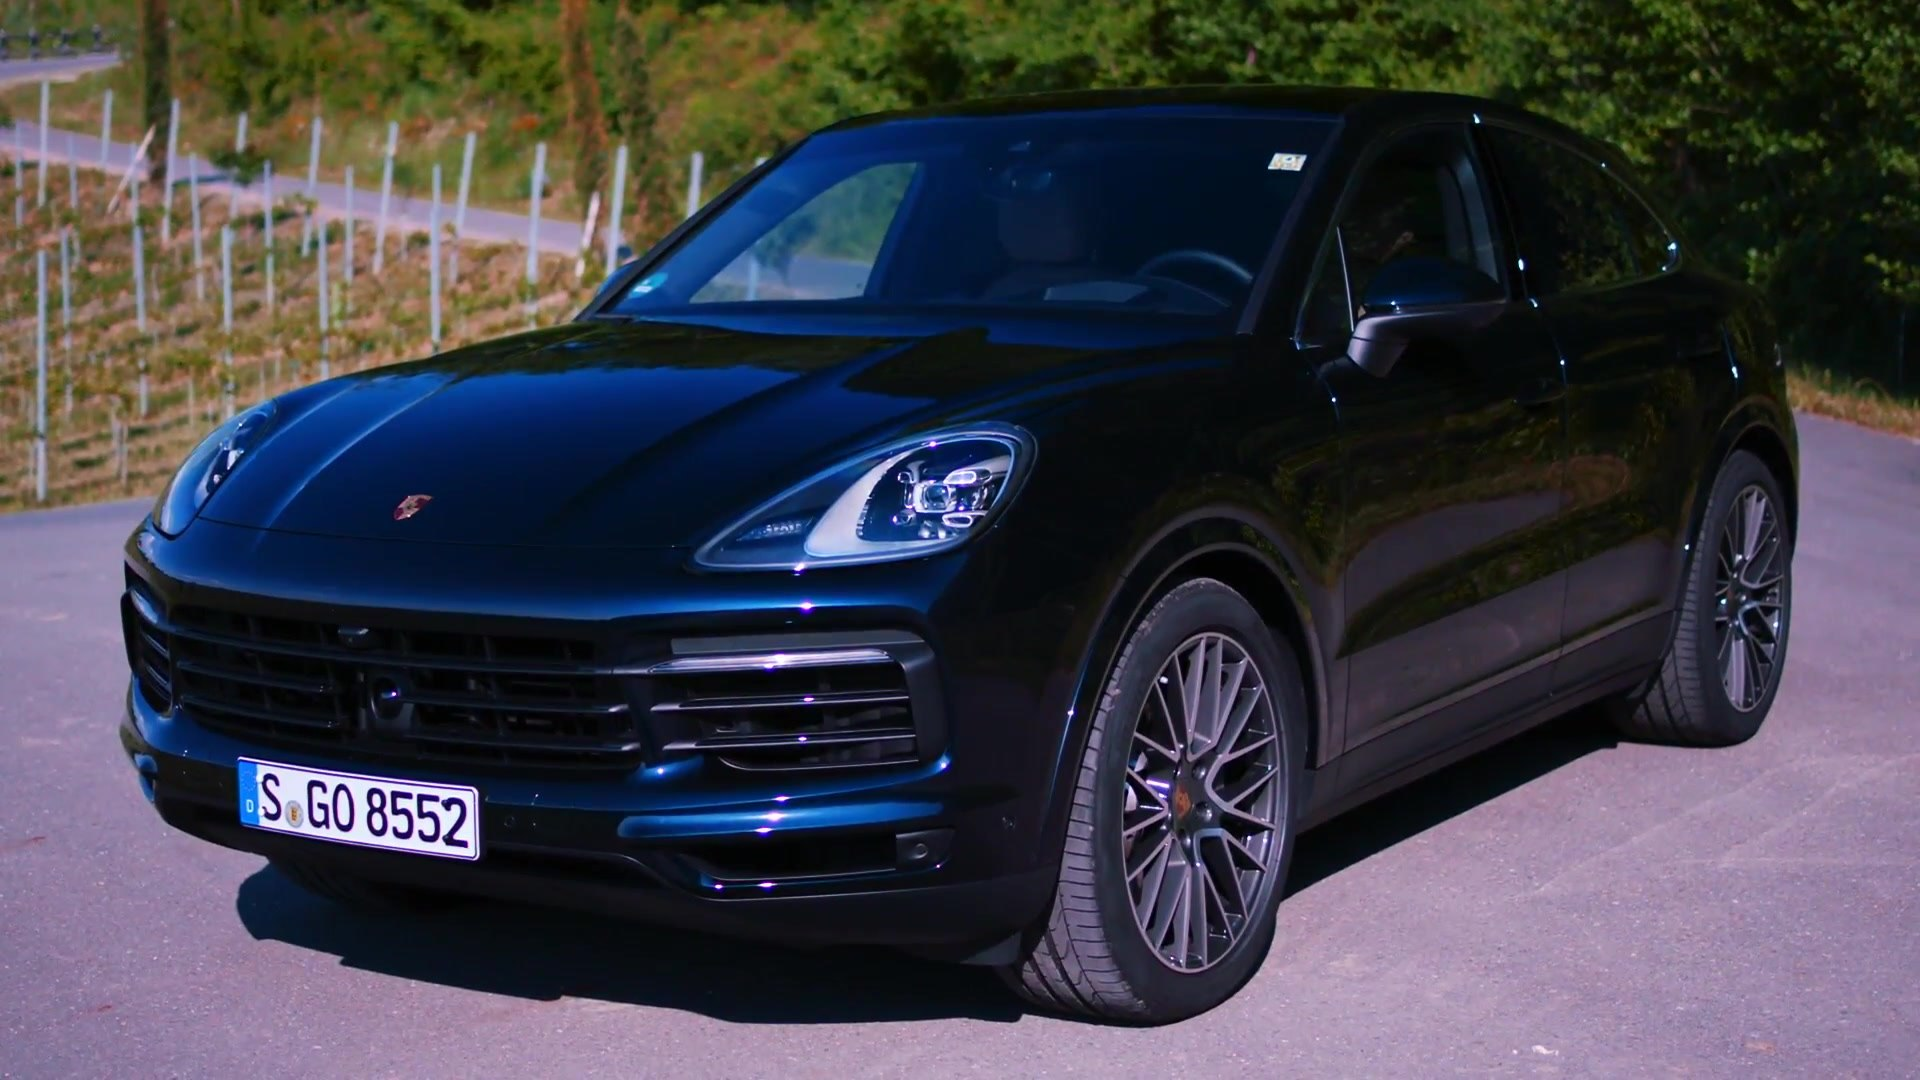 Porsche Cayenne S Coupe Design In Moonlight Blue Video Dailymotion